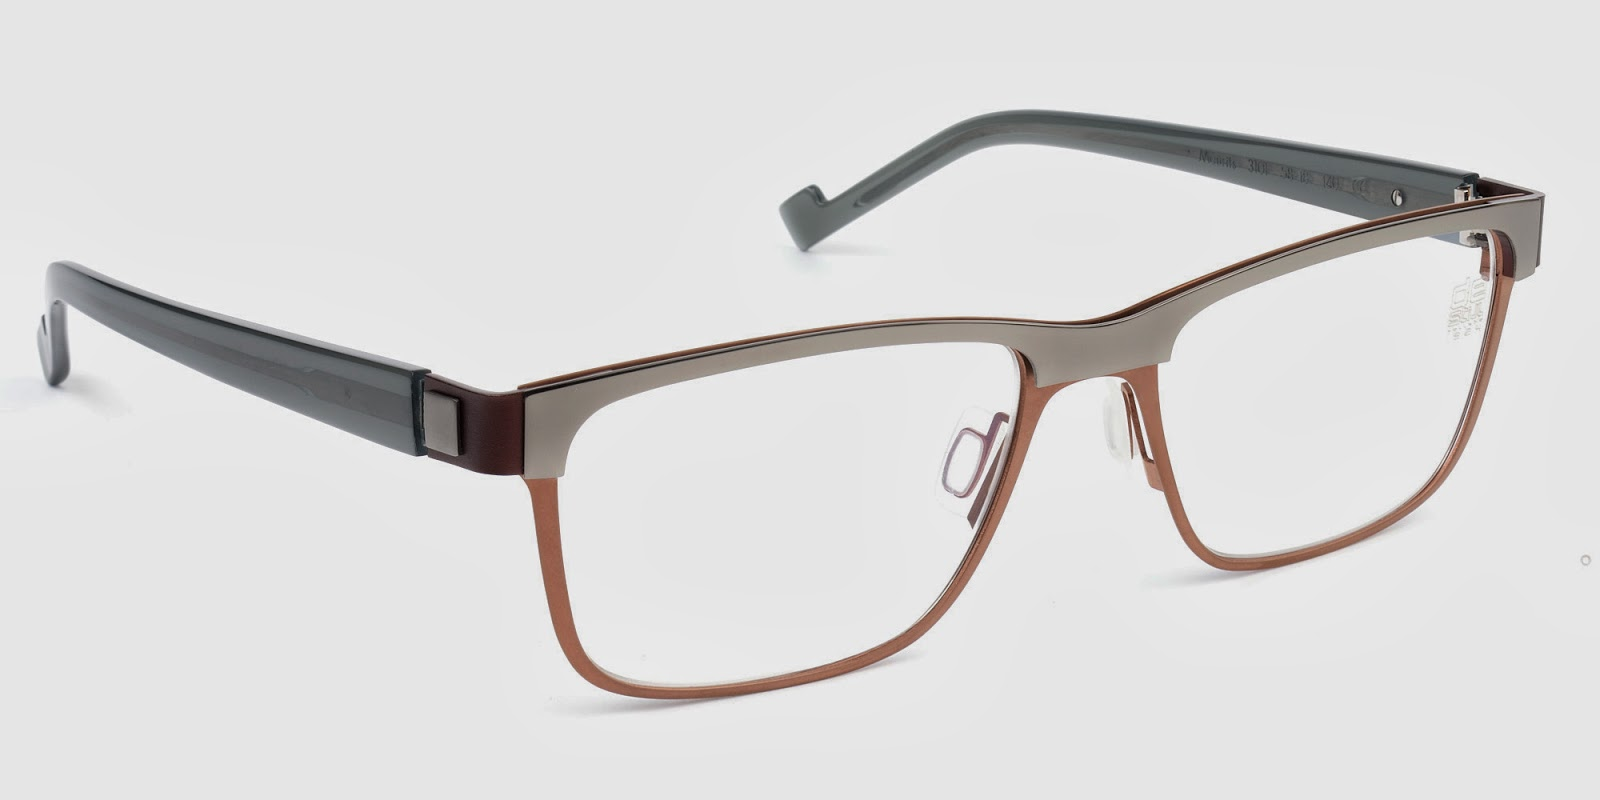 Glasses Frames Netherlands : childhood is over, its time for real toys: